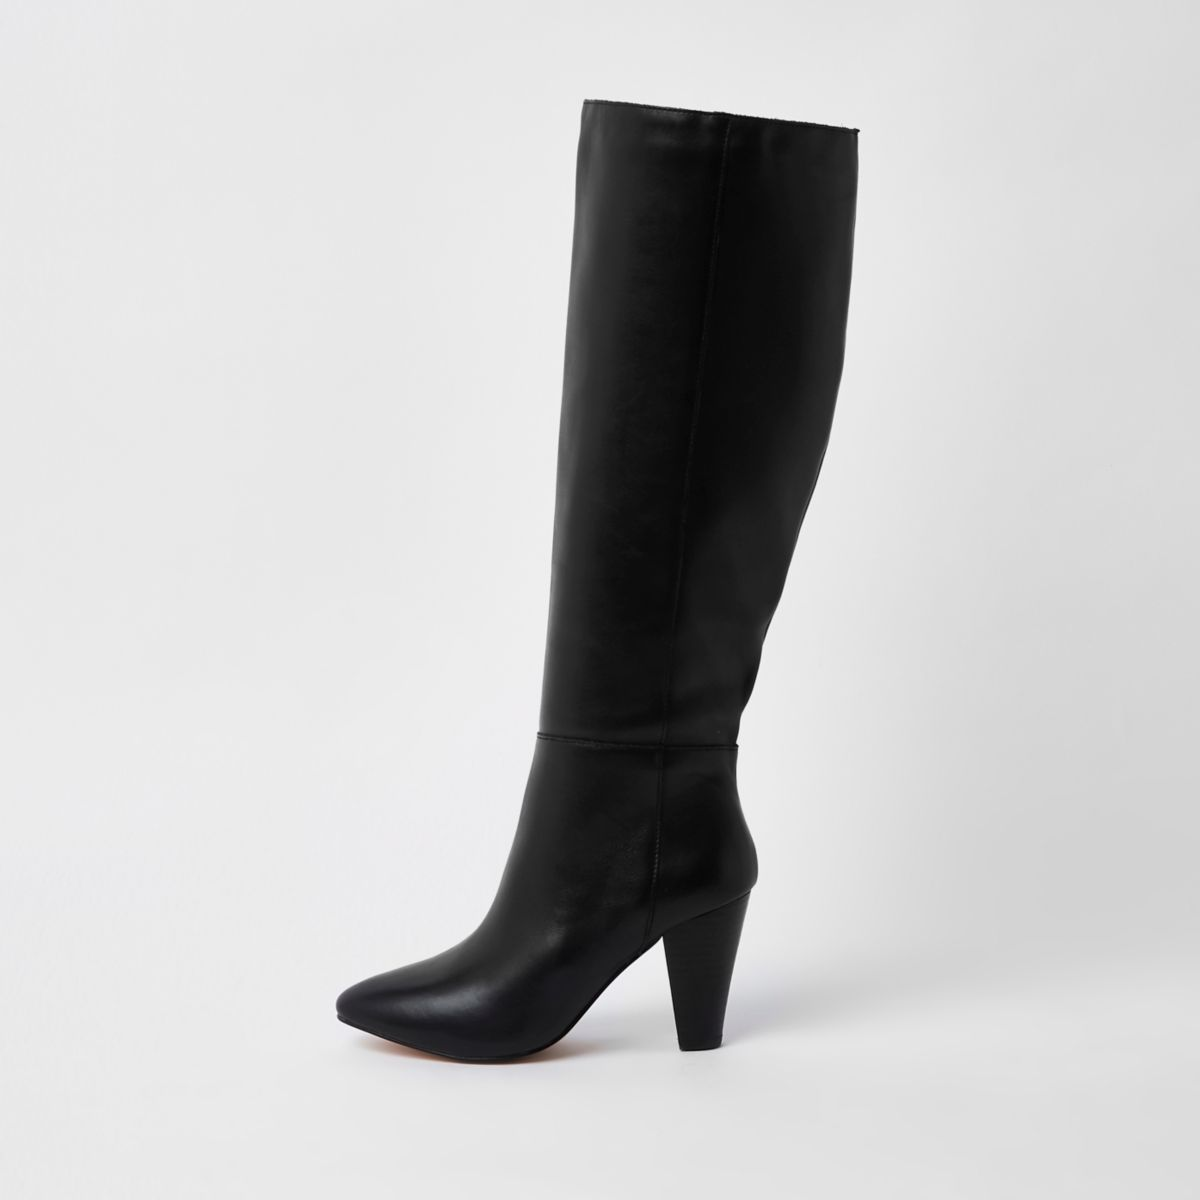 Black leather knee high block heel boots